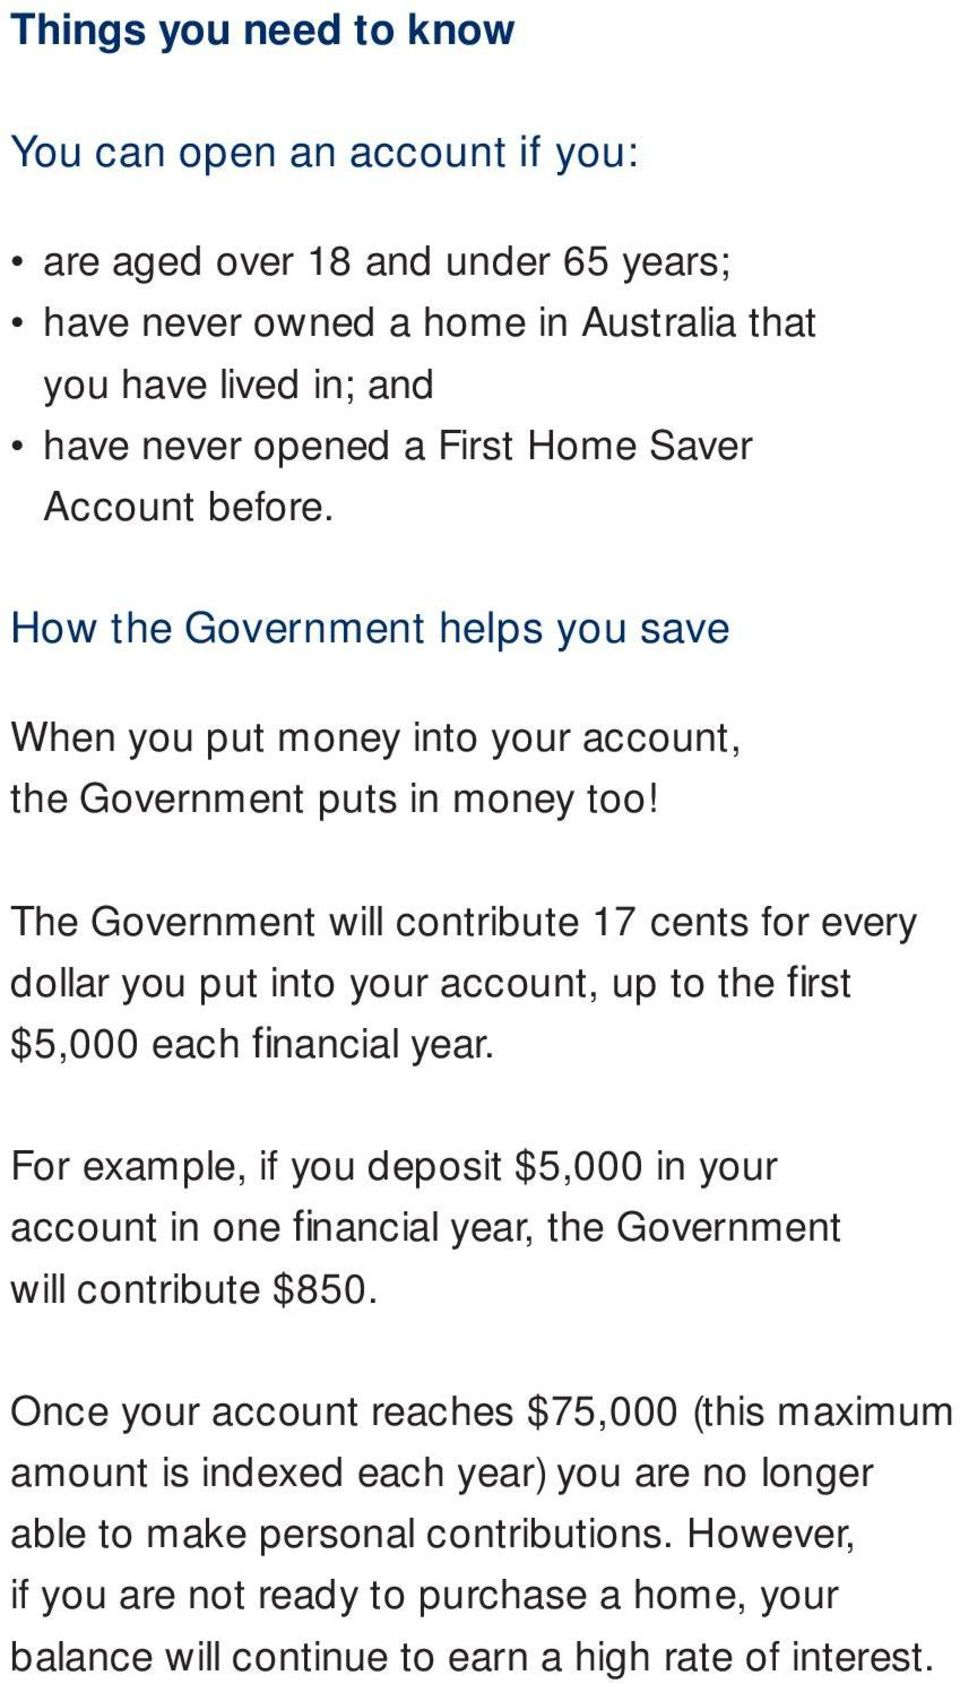 The Government will contribute 17 cents for every dollar you put into your account, up to the fi rst $5,000 each fi nancial year.